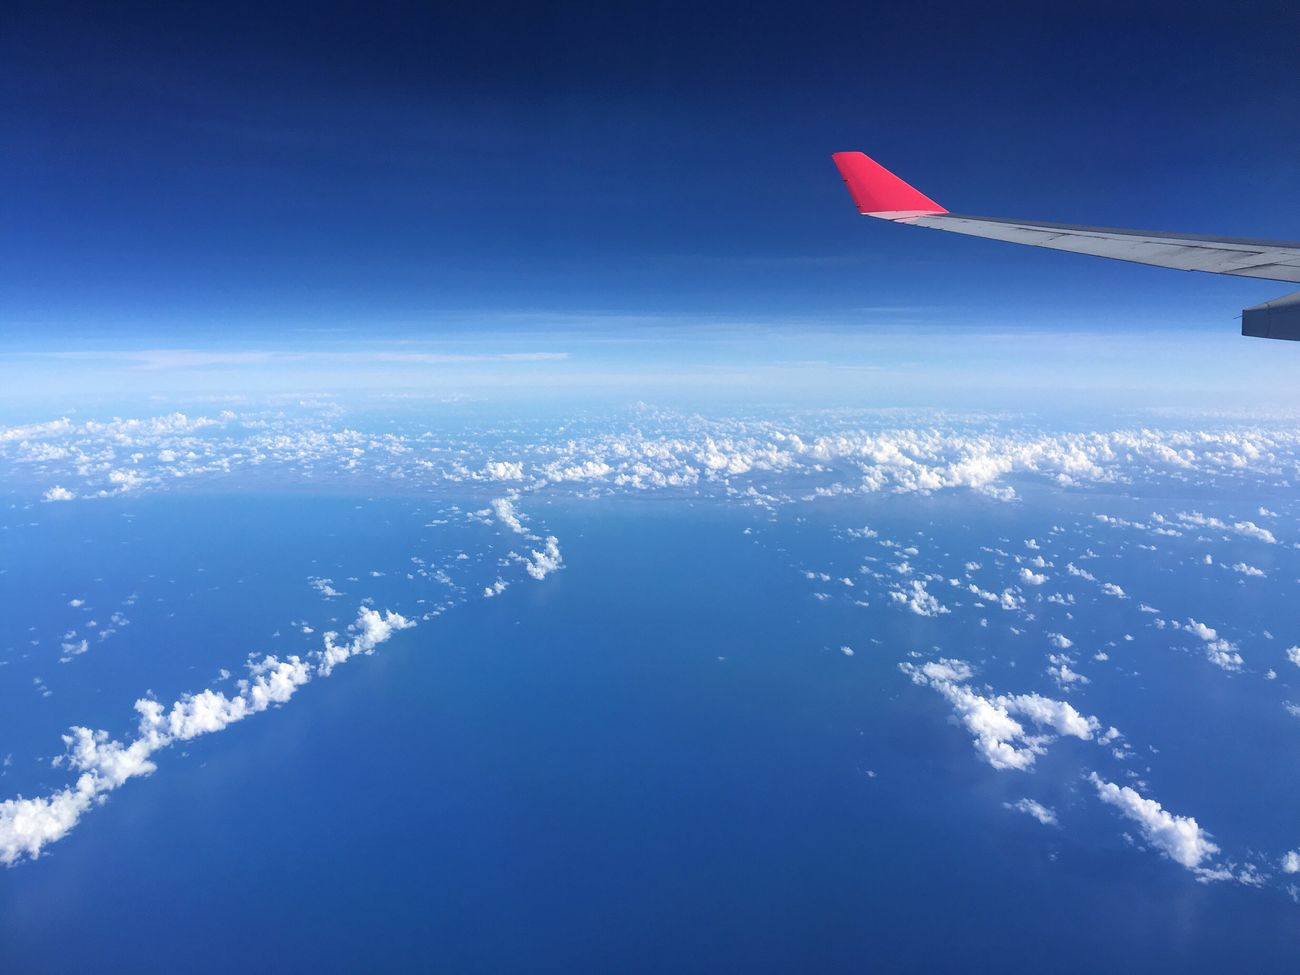 Flying Sky Airplane Nature Transportation No People Sea Outdoors Aircraft Wing Scenics Airplane Wing Air Vehicle Horizon Over Water Cloud - Sky Beauty In Nature Day Water